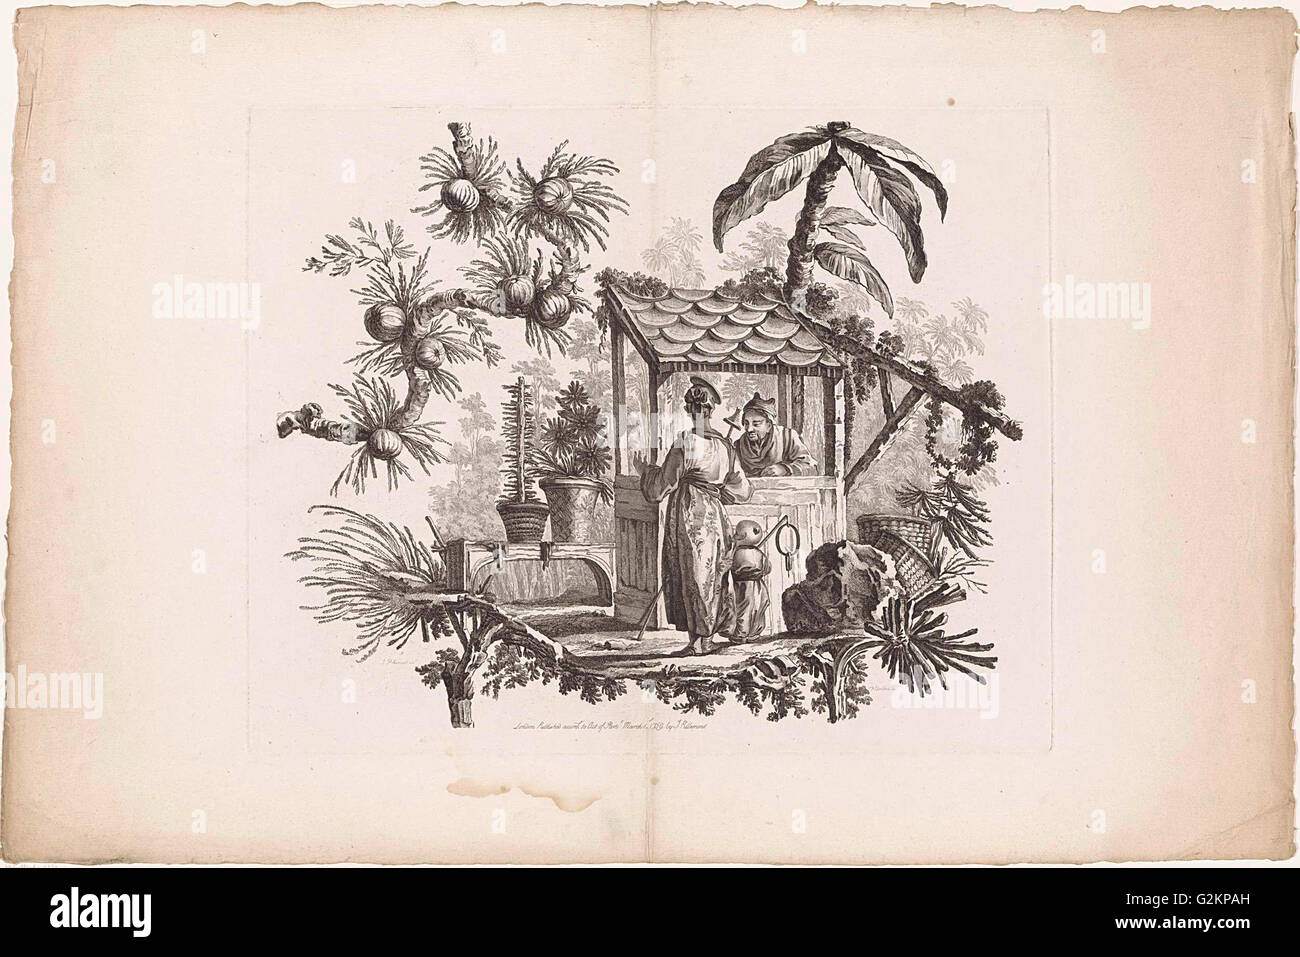 China, Chinese houses and people, I. Pillement inv. F.A. Aveline sc. Londen by I. Pillement - Stock Image